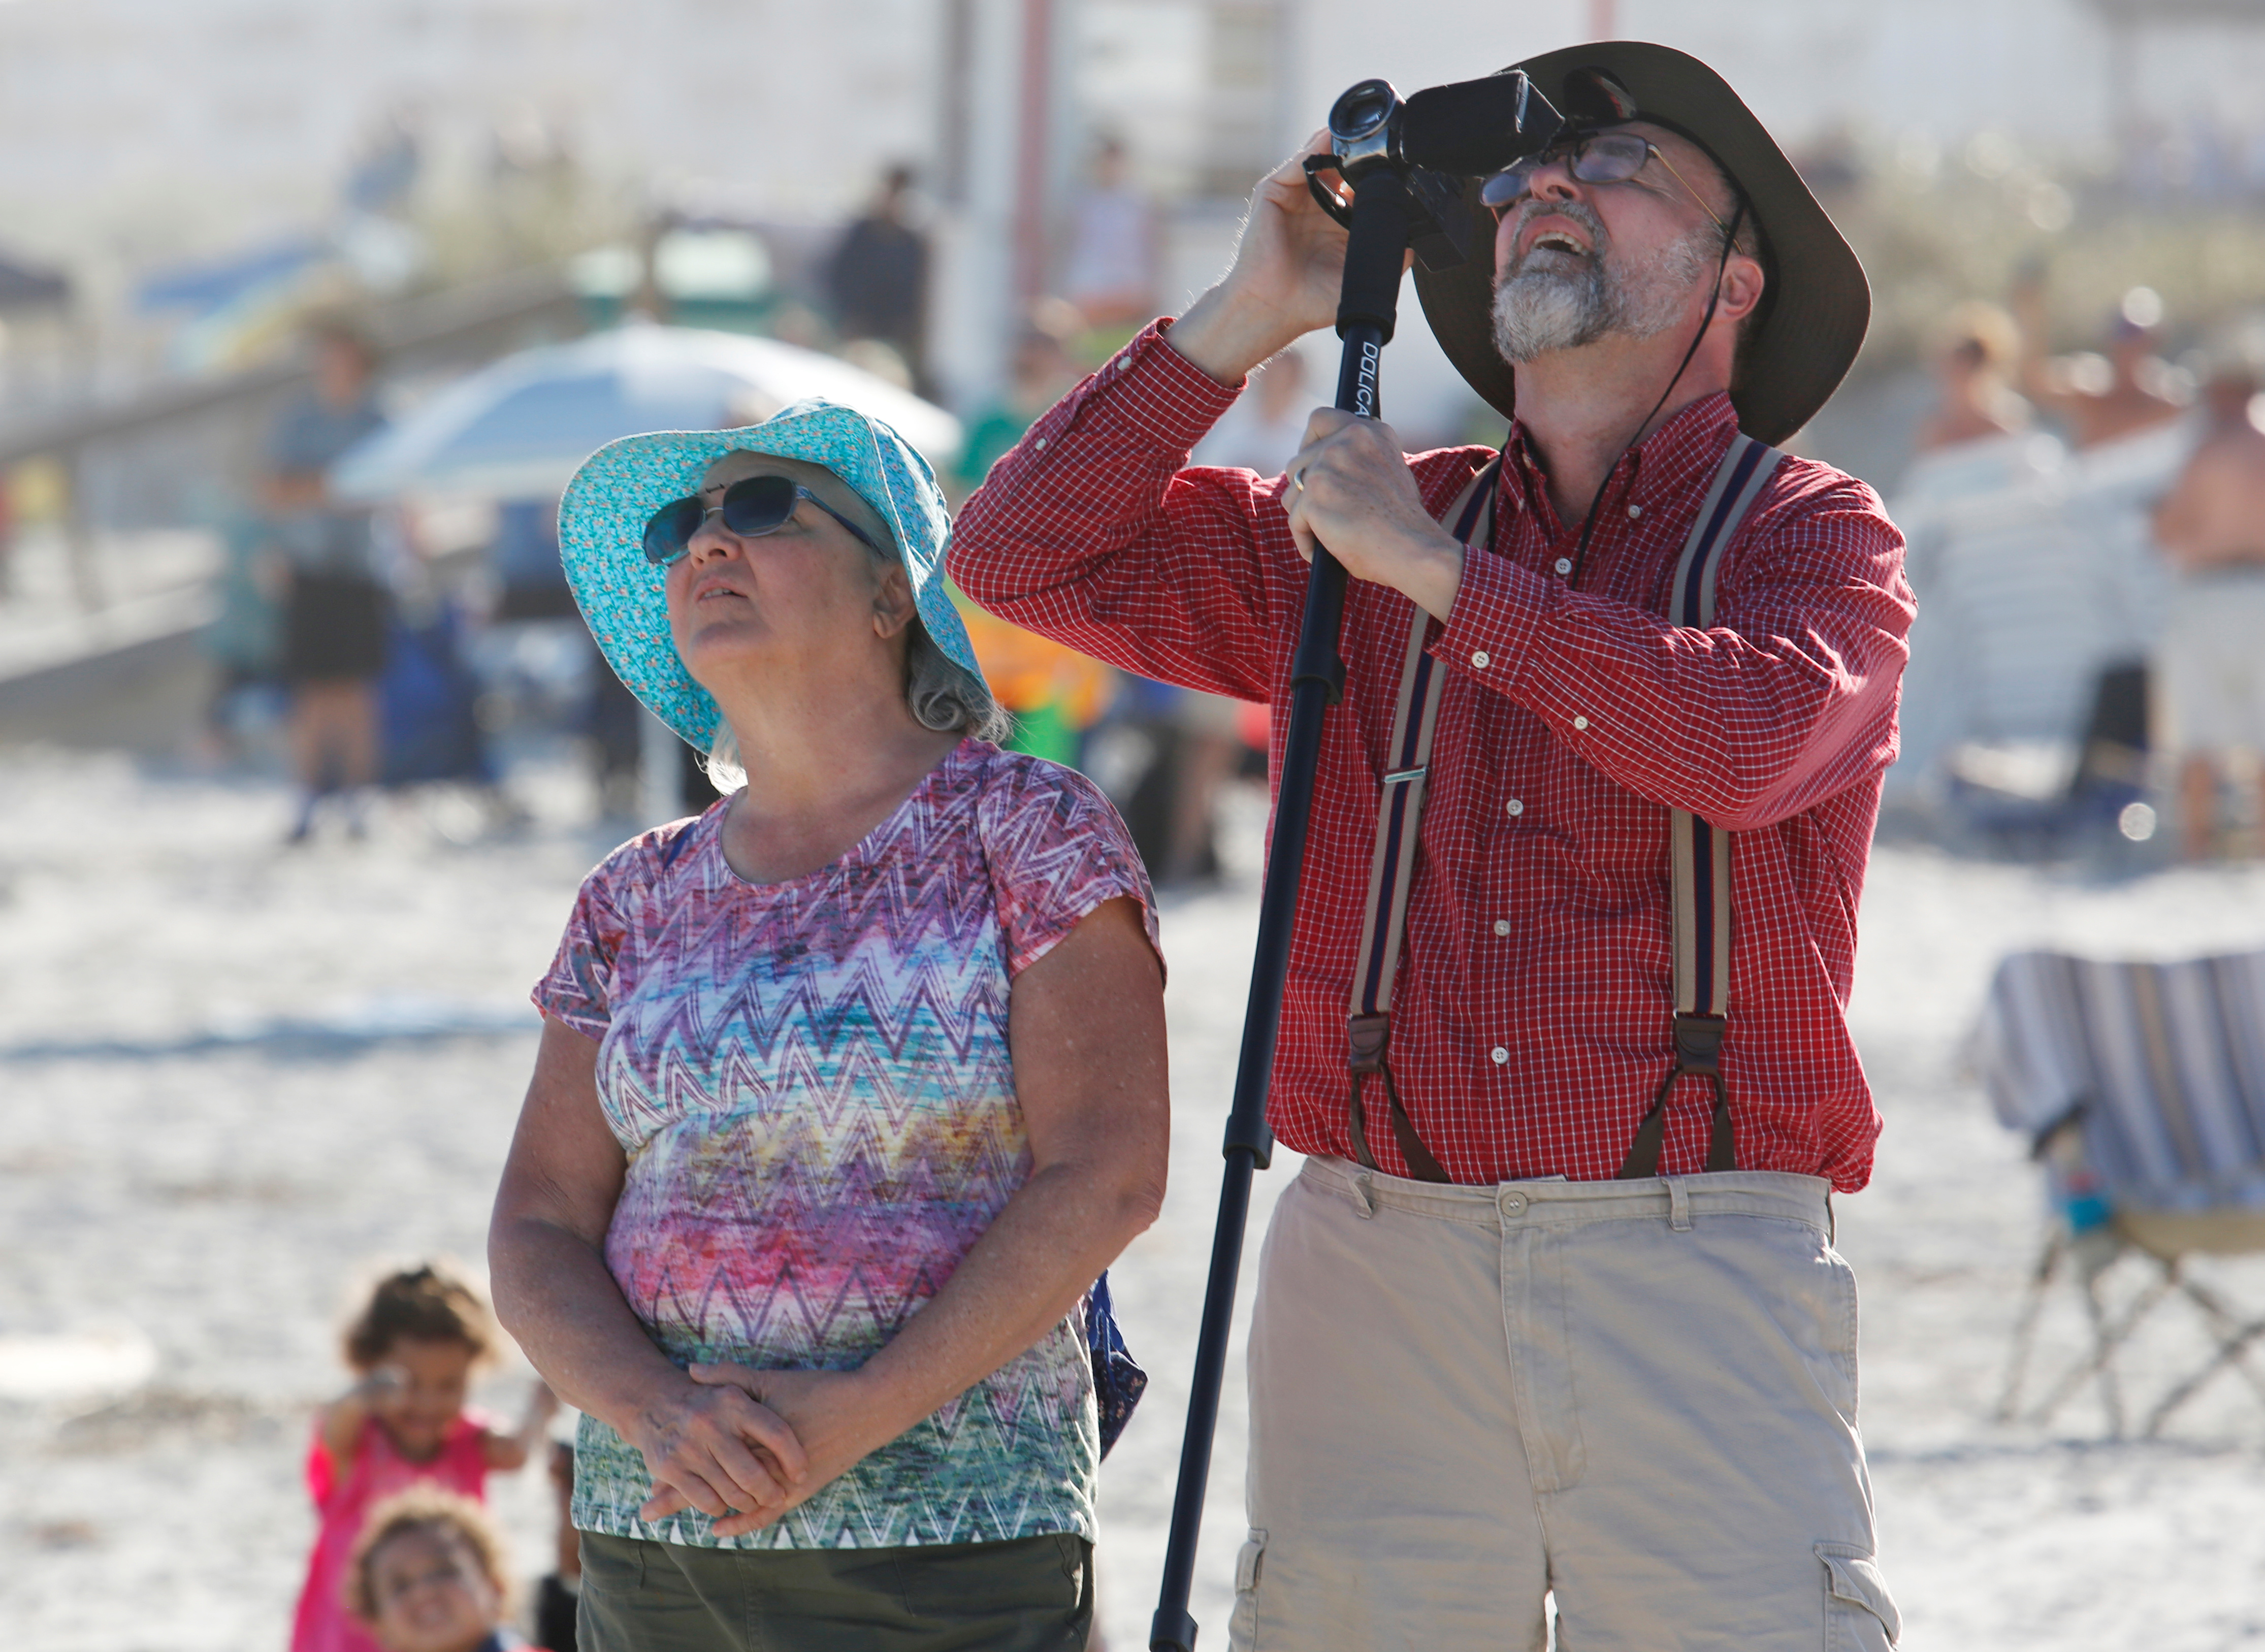 Spectators at Cocoa Beach watch SpaceX's first Falcon Heavy rocket launch from the Kennedy Space Center, Florida, Feb. 6, 2018.